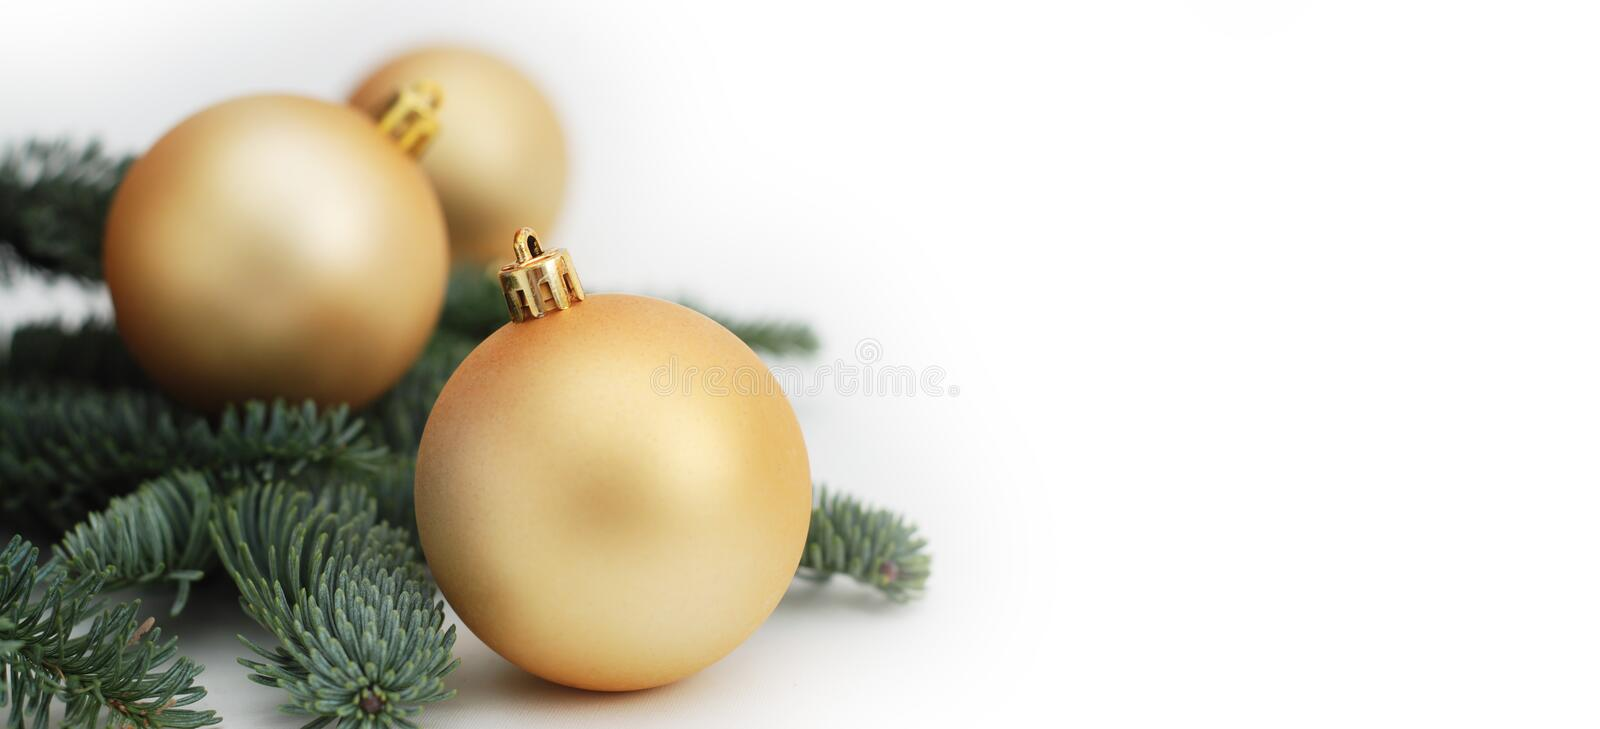 Gold Christmas Tree Bauble Decoration Ornament with Fir Branches Isolated. Banner. stock images